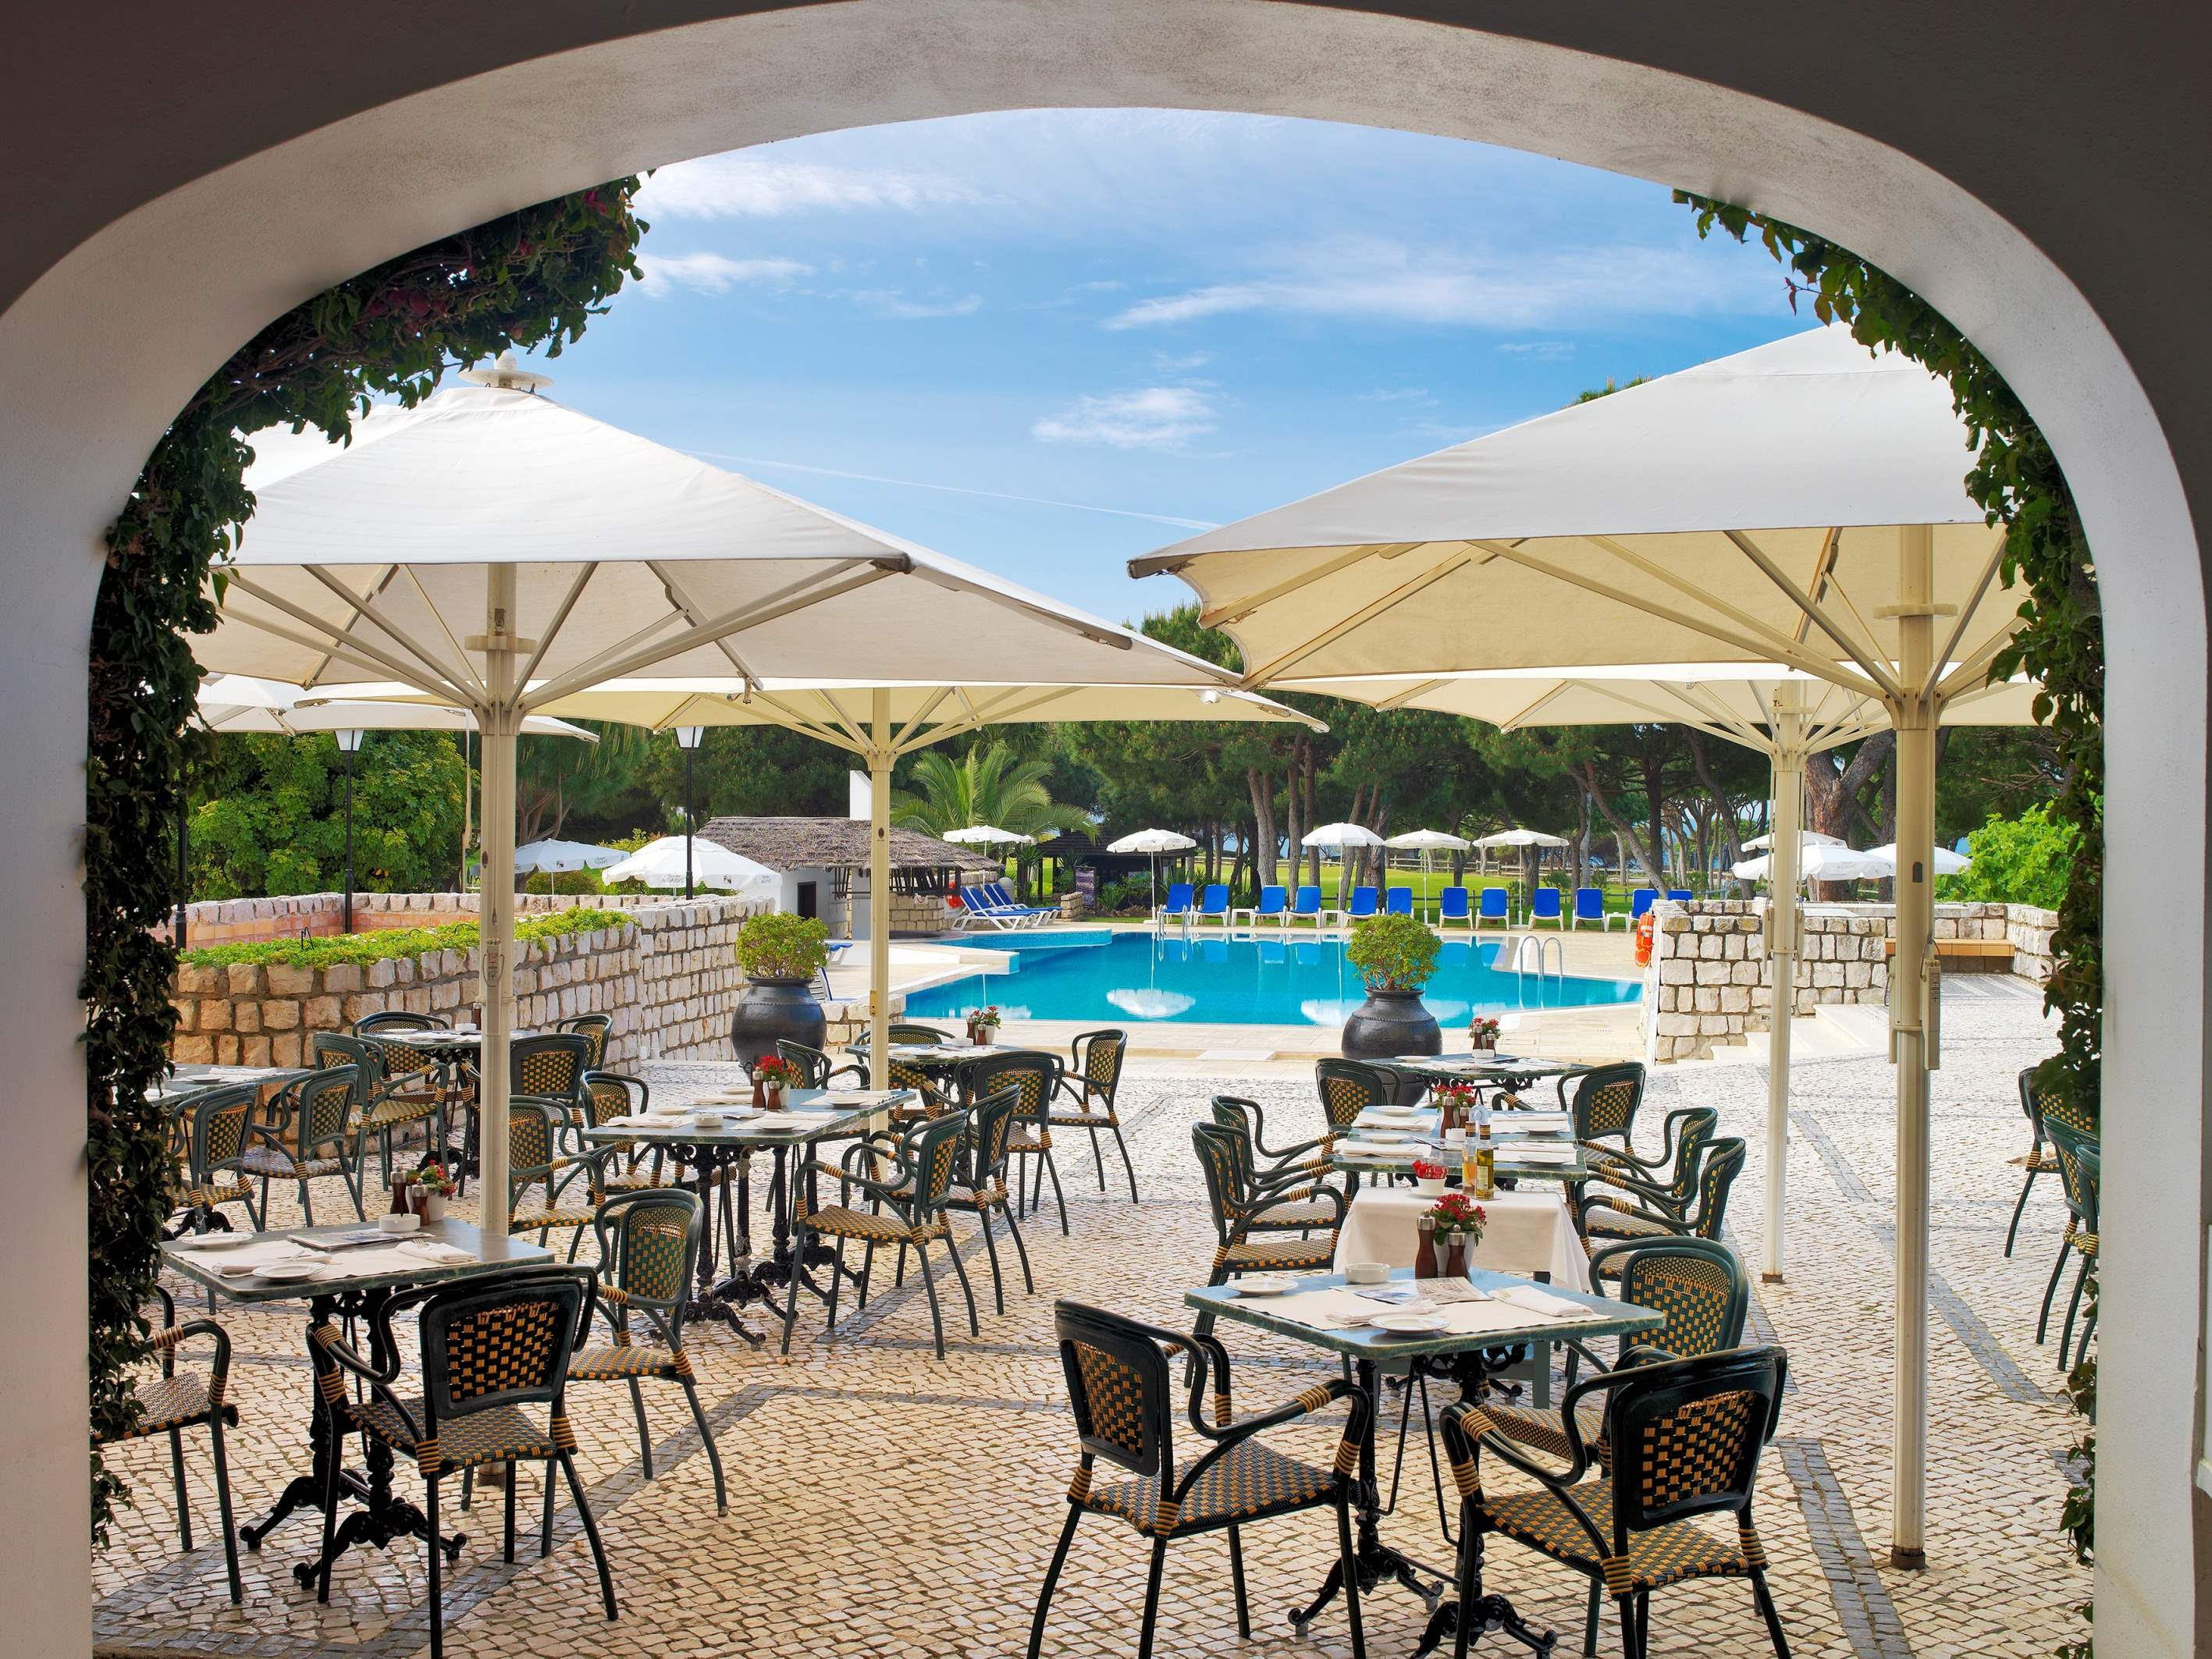 Pine Cliffs Gardens, Two Bedroom Suite, S/C Basis, 2 bedroom apartment in Pine Cliffs Resort, Algarve Photo #36